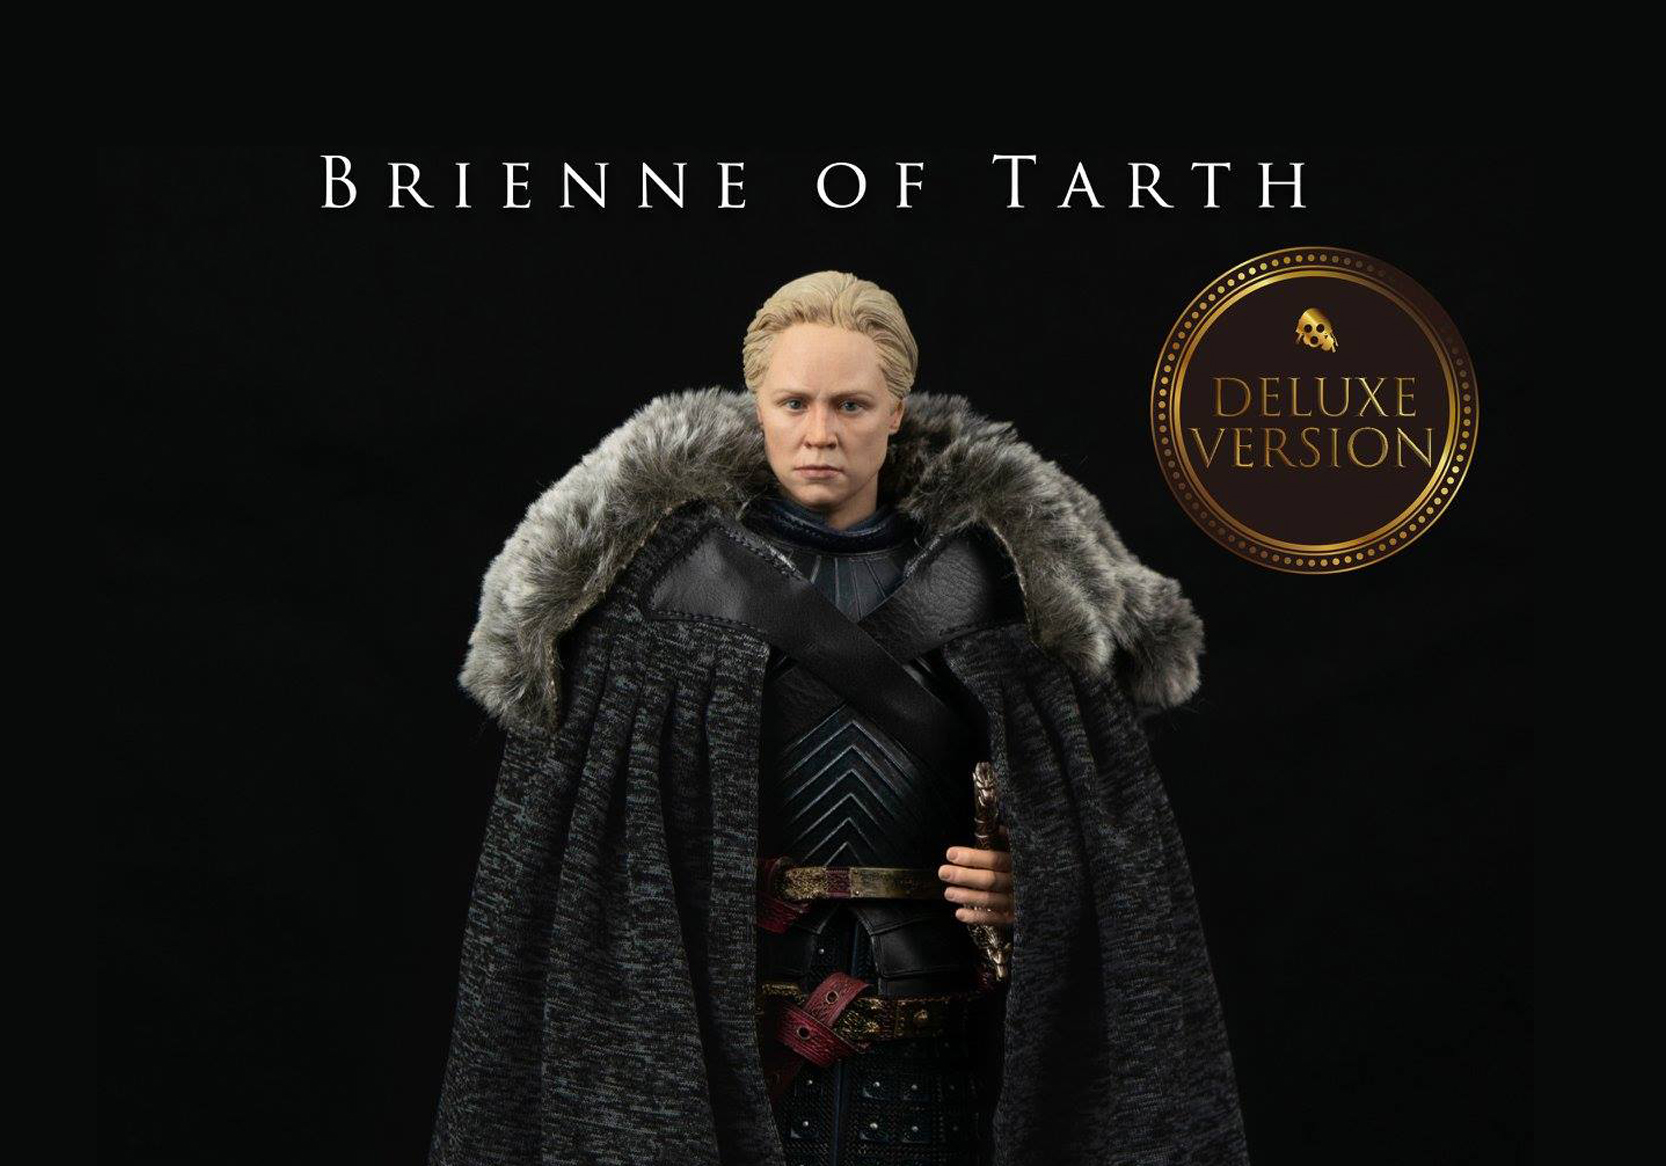 ThreeZero: Game of Thrones Brienne of Tarth 1/6 Ölçek – Deluxe Versiyon